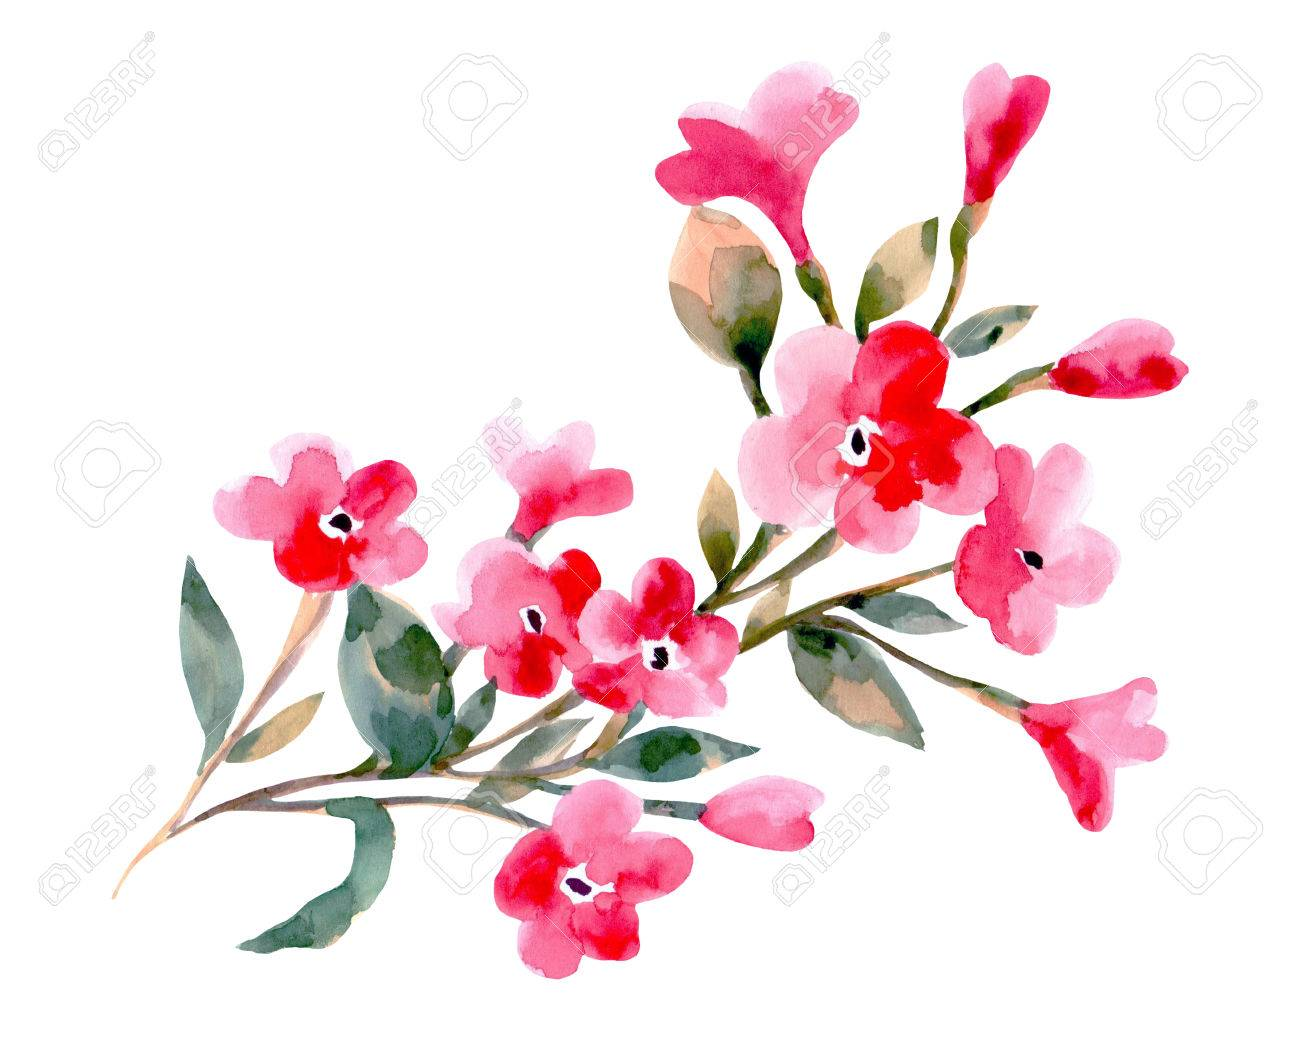 Watercolor illustration of a cherry flowers on a white background. Background for your design and decor. - 63721266